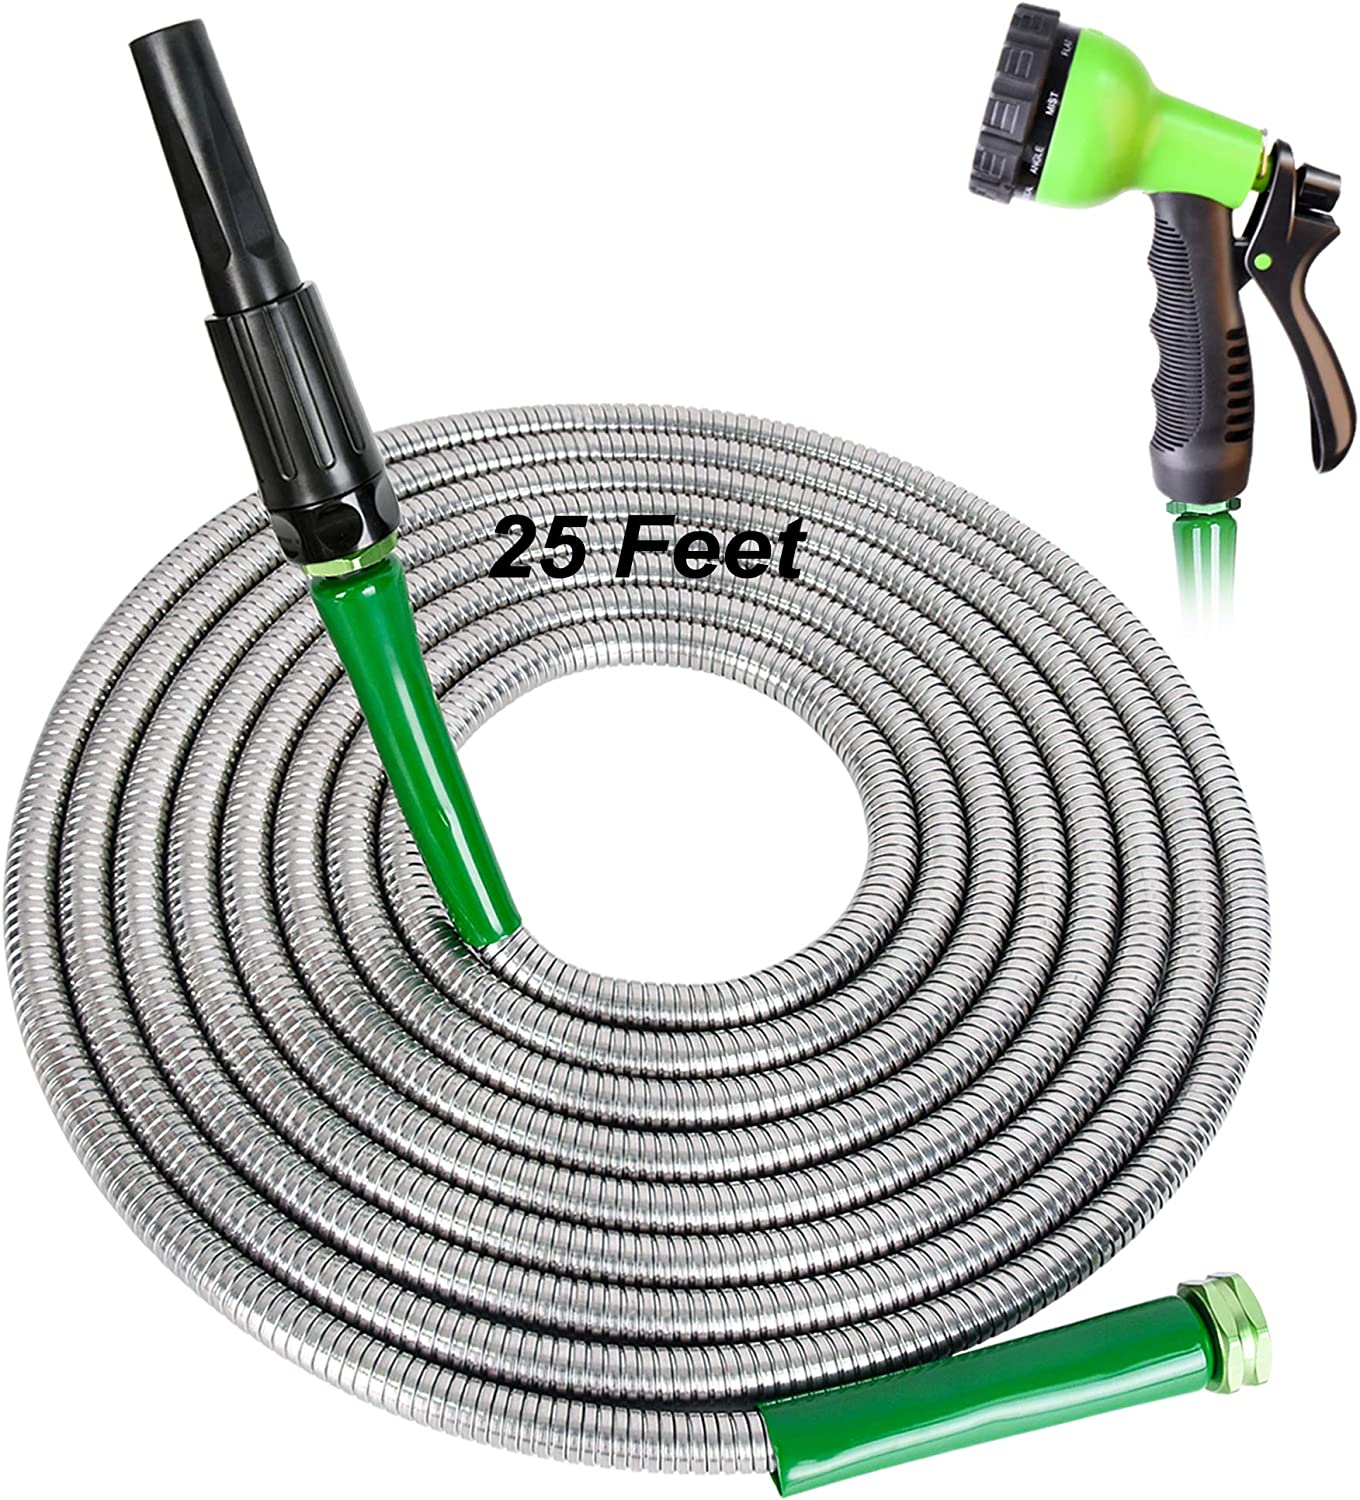 FUDESY 25 Feet 304 Stainless Steel Metal Garden Hose - 10-Ways Spray Nozzle | One More Adjustable Nozzle | Leakproof Gasket,Anti-Corrosion Kinkproof Water Hose for Garden,House,Pet